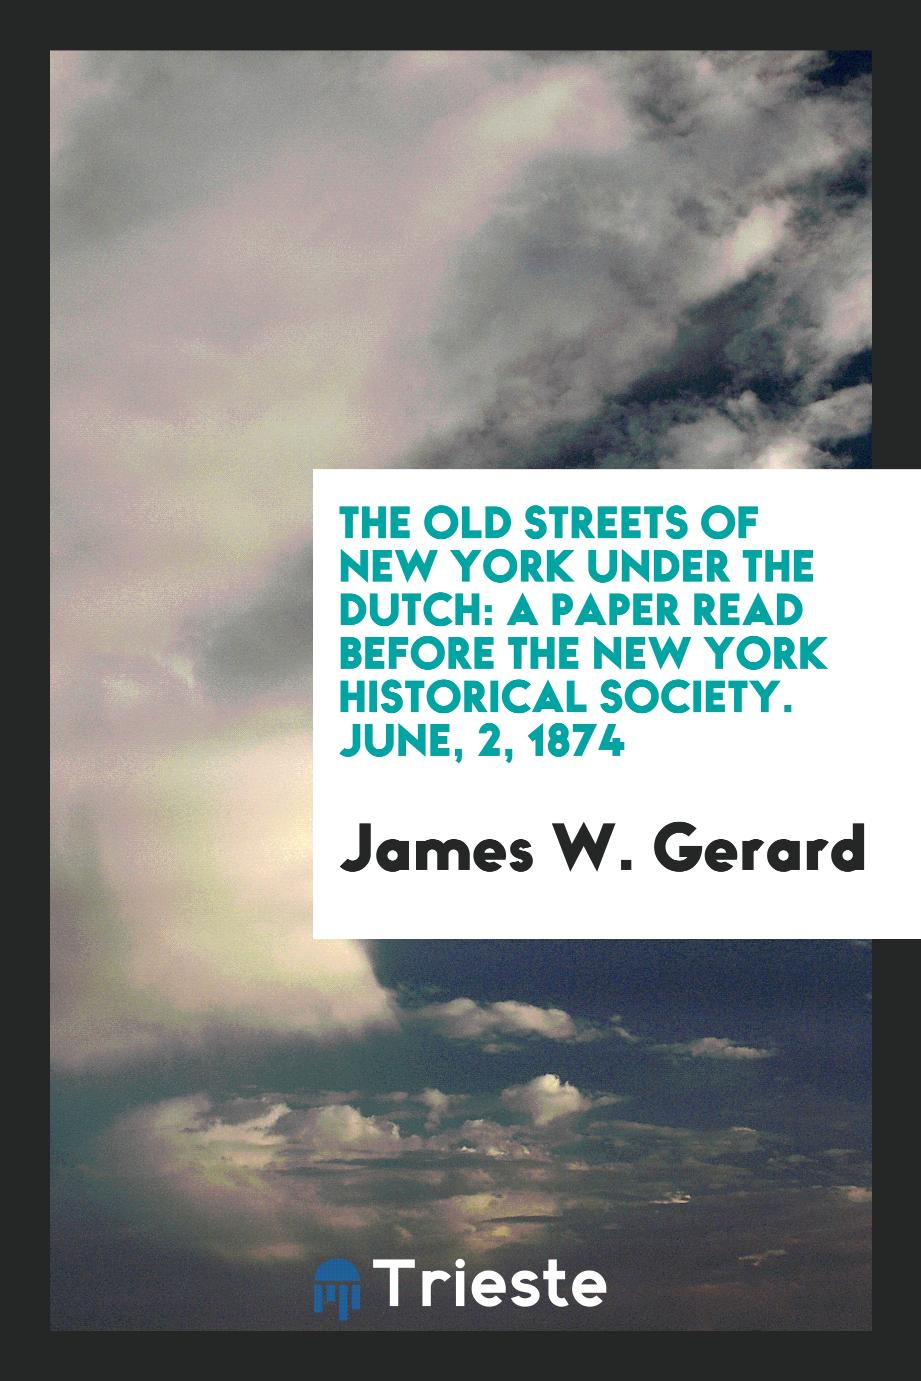 The Old Streets of New York Under the Dutch: A Paper Read Before the New York Historical Society. June, 2, 1874